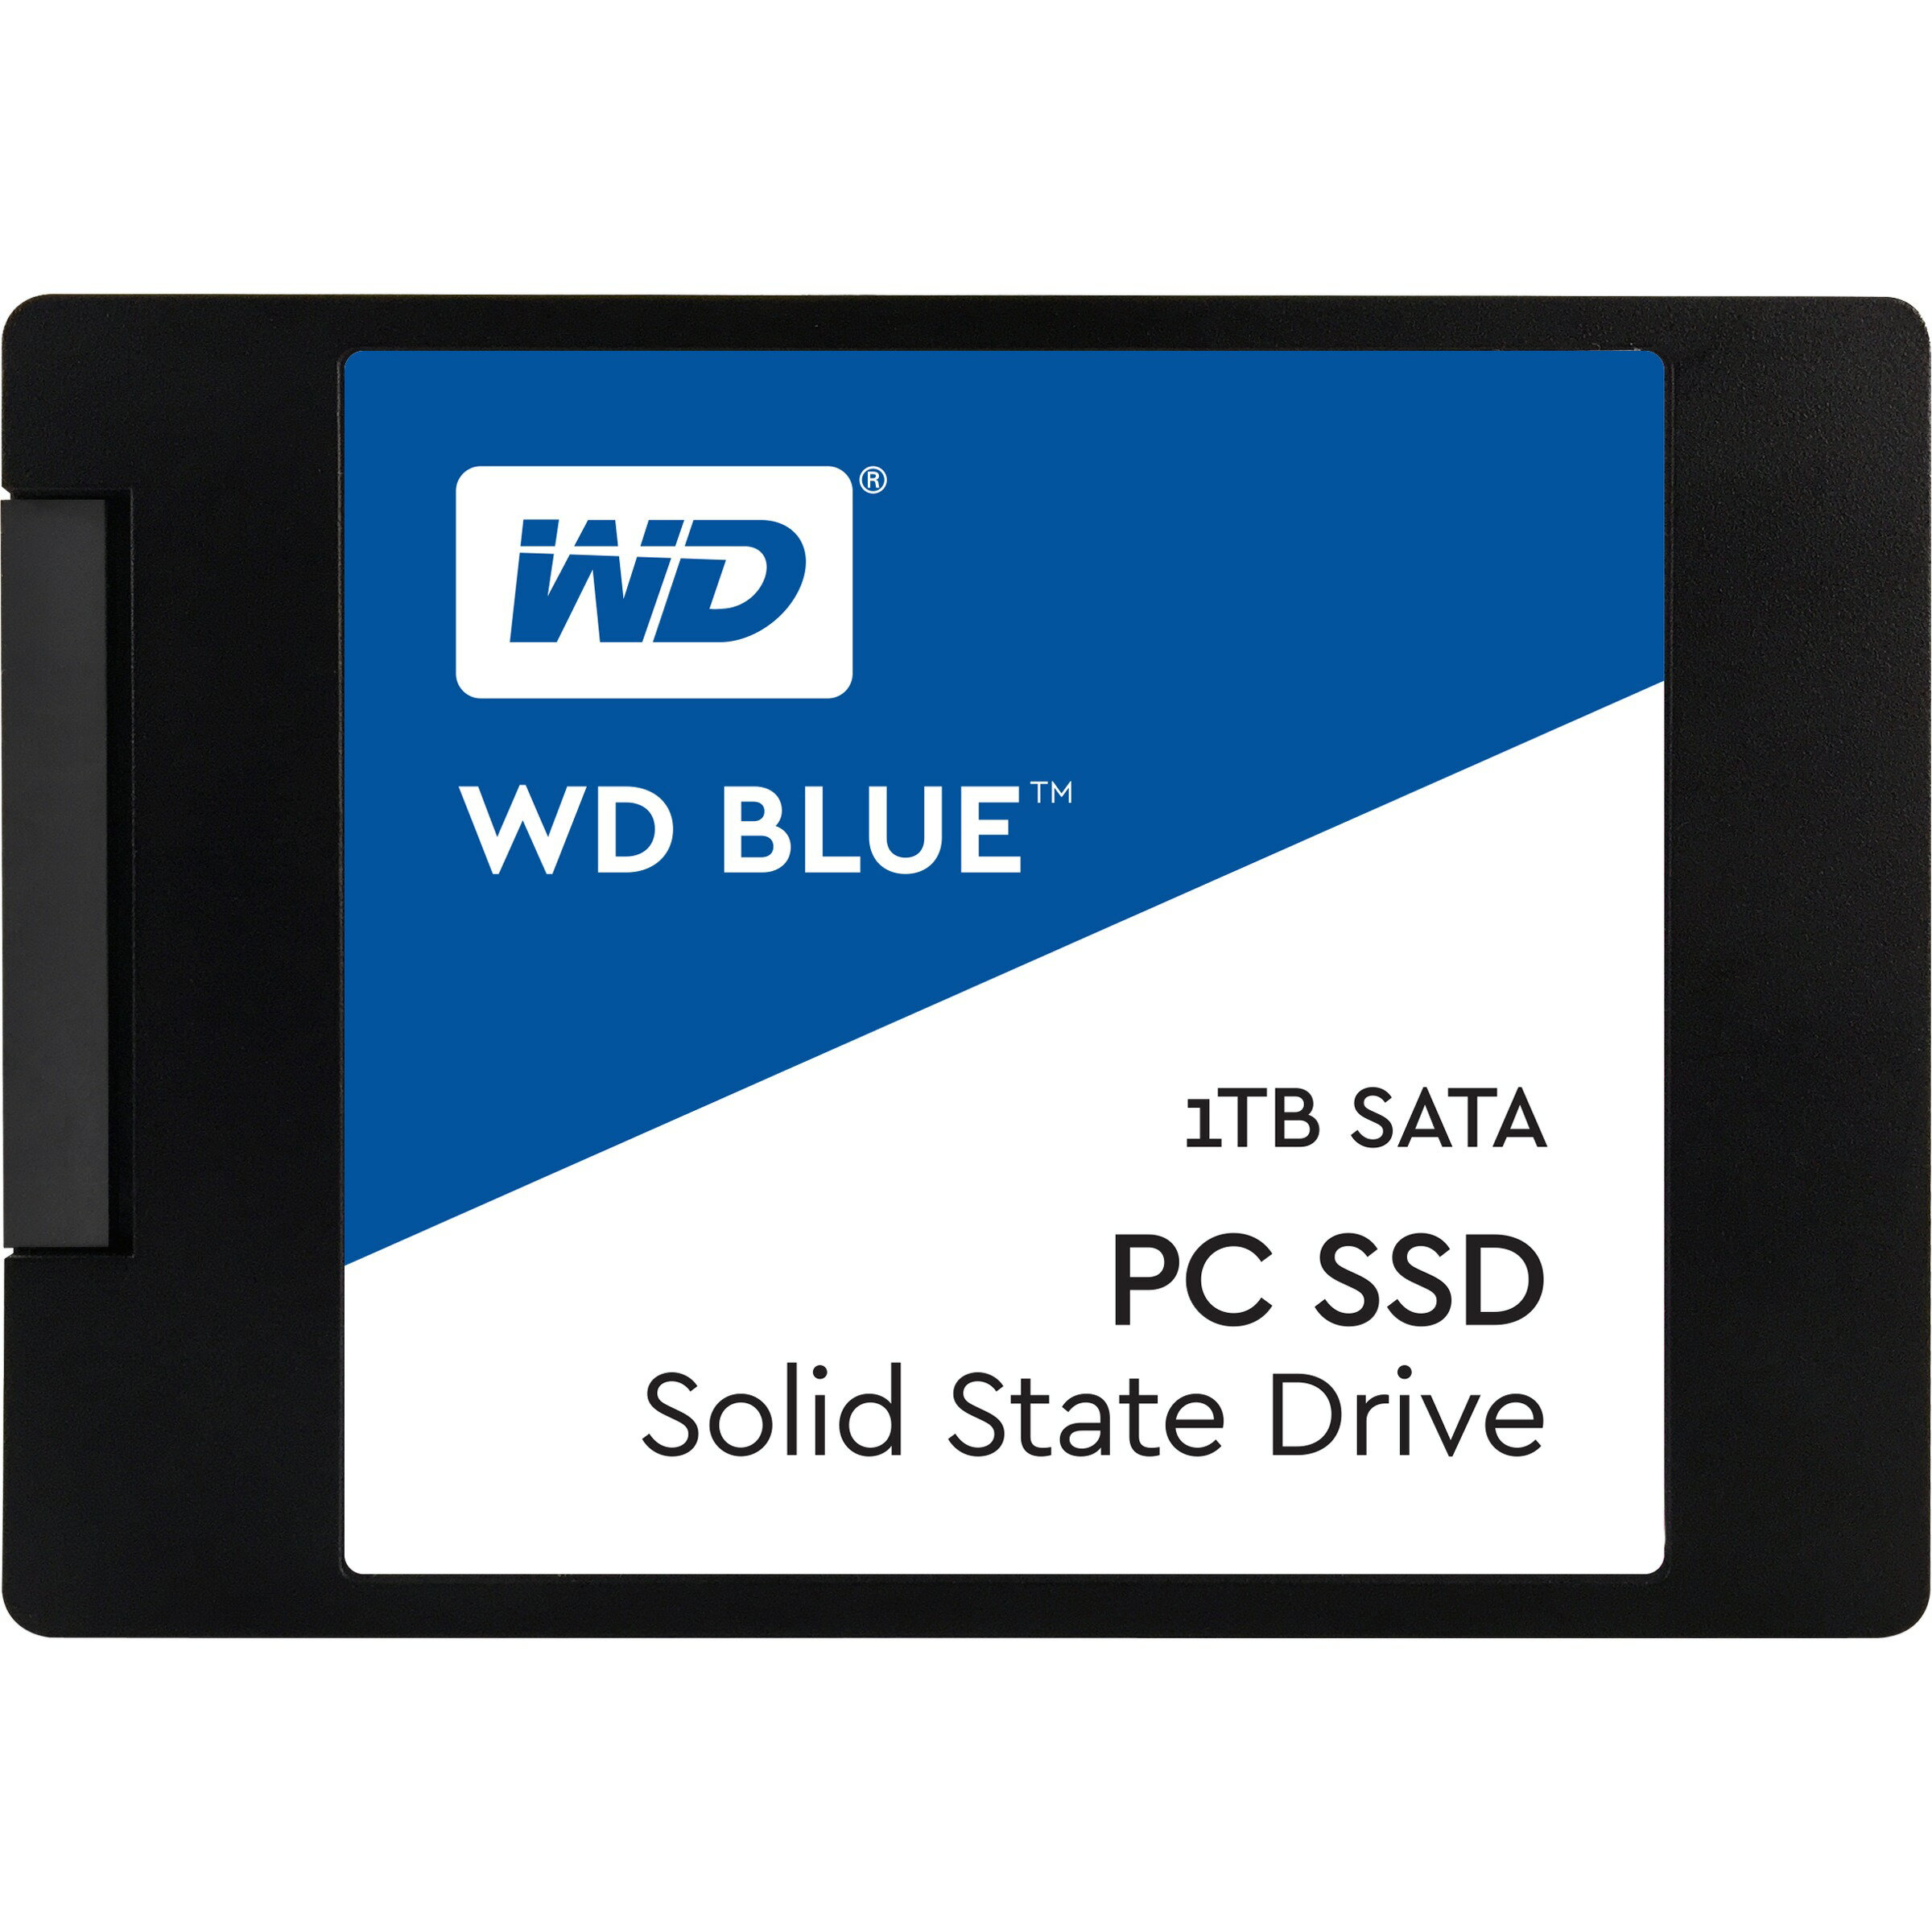 "WD Blue SSD 1TB 2.5"" 1.0TB SATA III 6Gb/s 7mm Western Digital PC Internal Solid State Drive 545MB/s Maximum Read Transfer Rate 525MB/s Maximum Write Transfer Rate WDS100T1B0A 0"